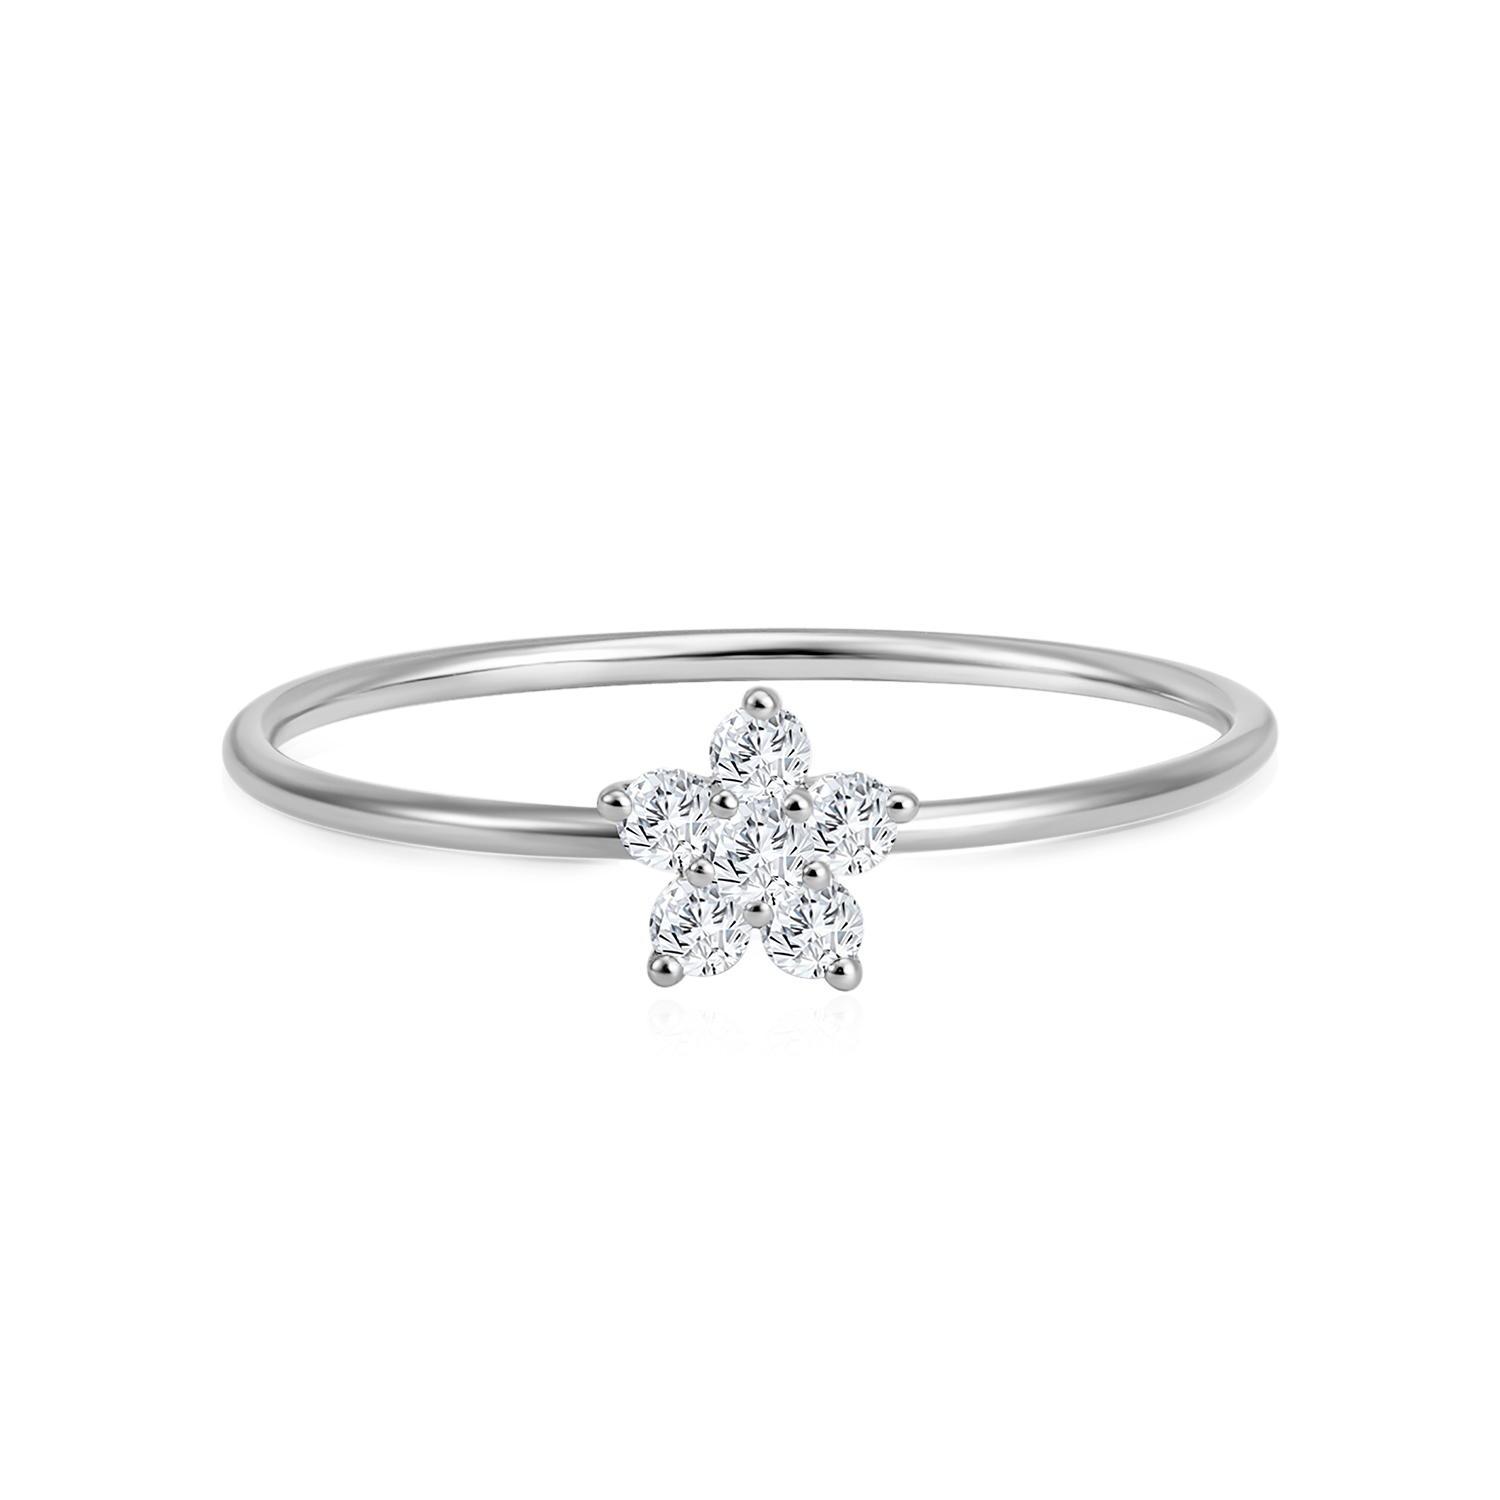 Starry Twinkle White Gold Diamond Ring